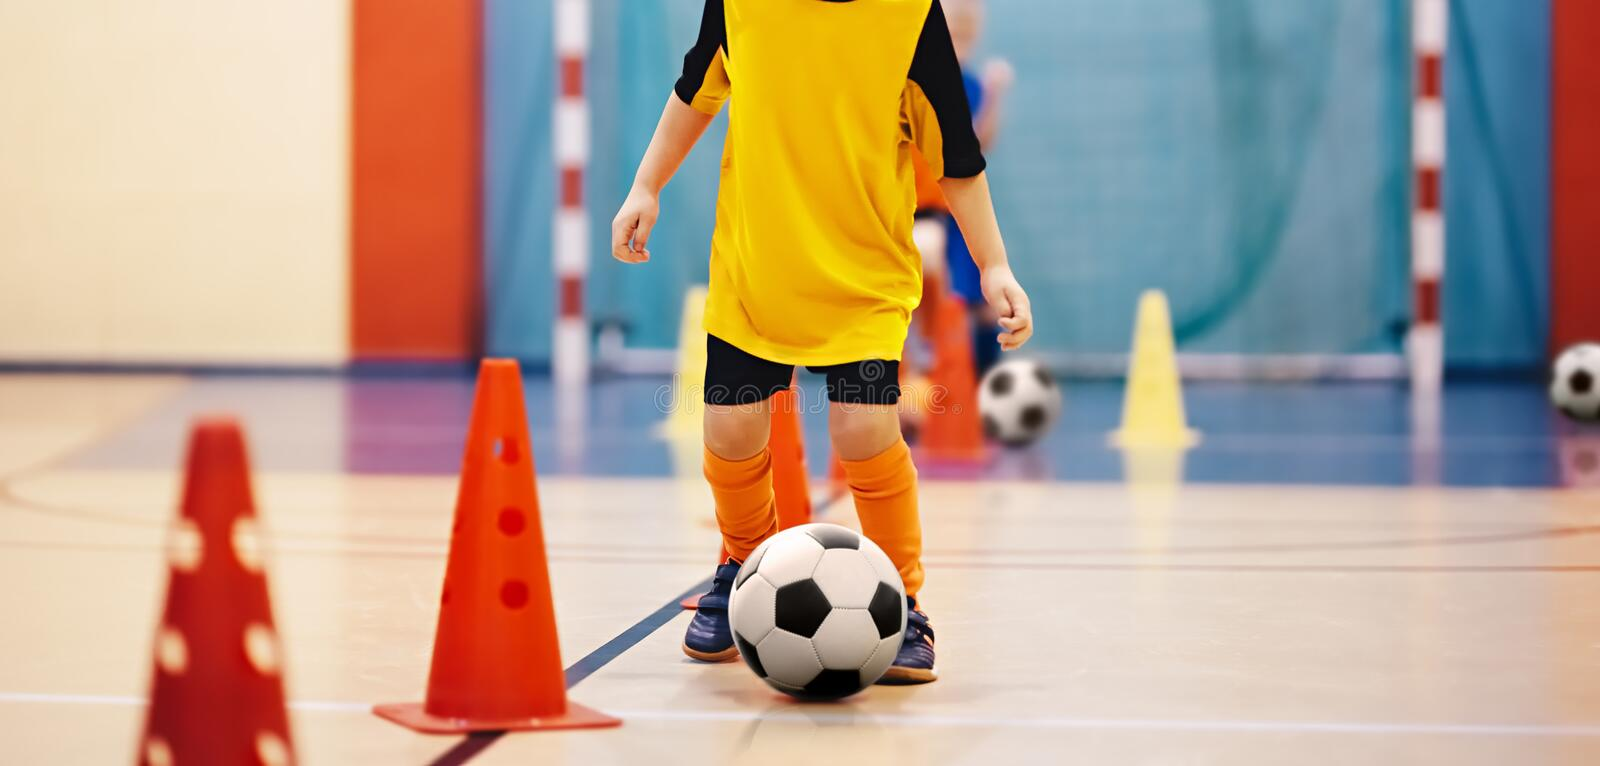 Football futsal training for children. Soccer training dribbling cone drill. Indoor soccer young player with a soccer ball in a sports hall. Player in orange royalty free stock photos